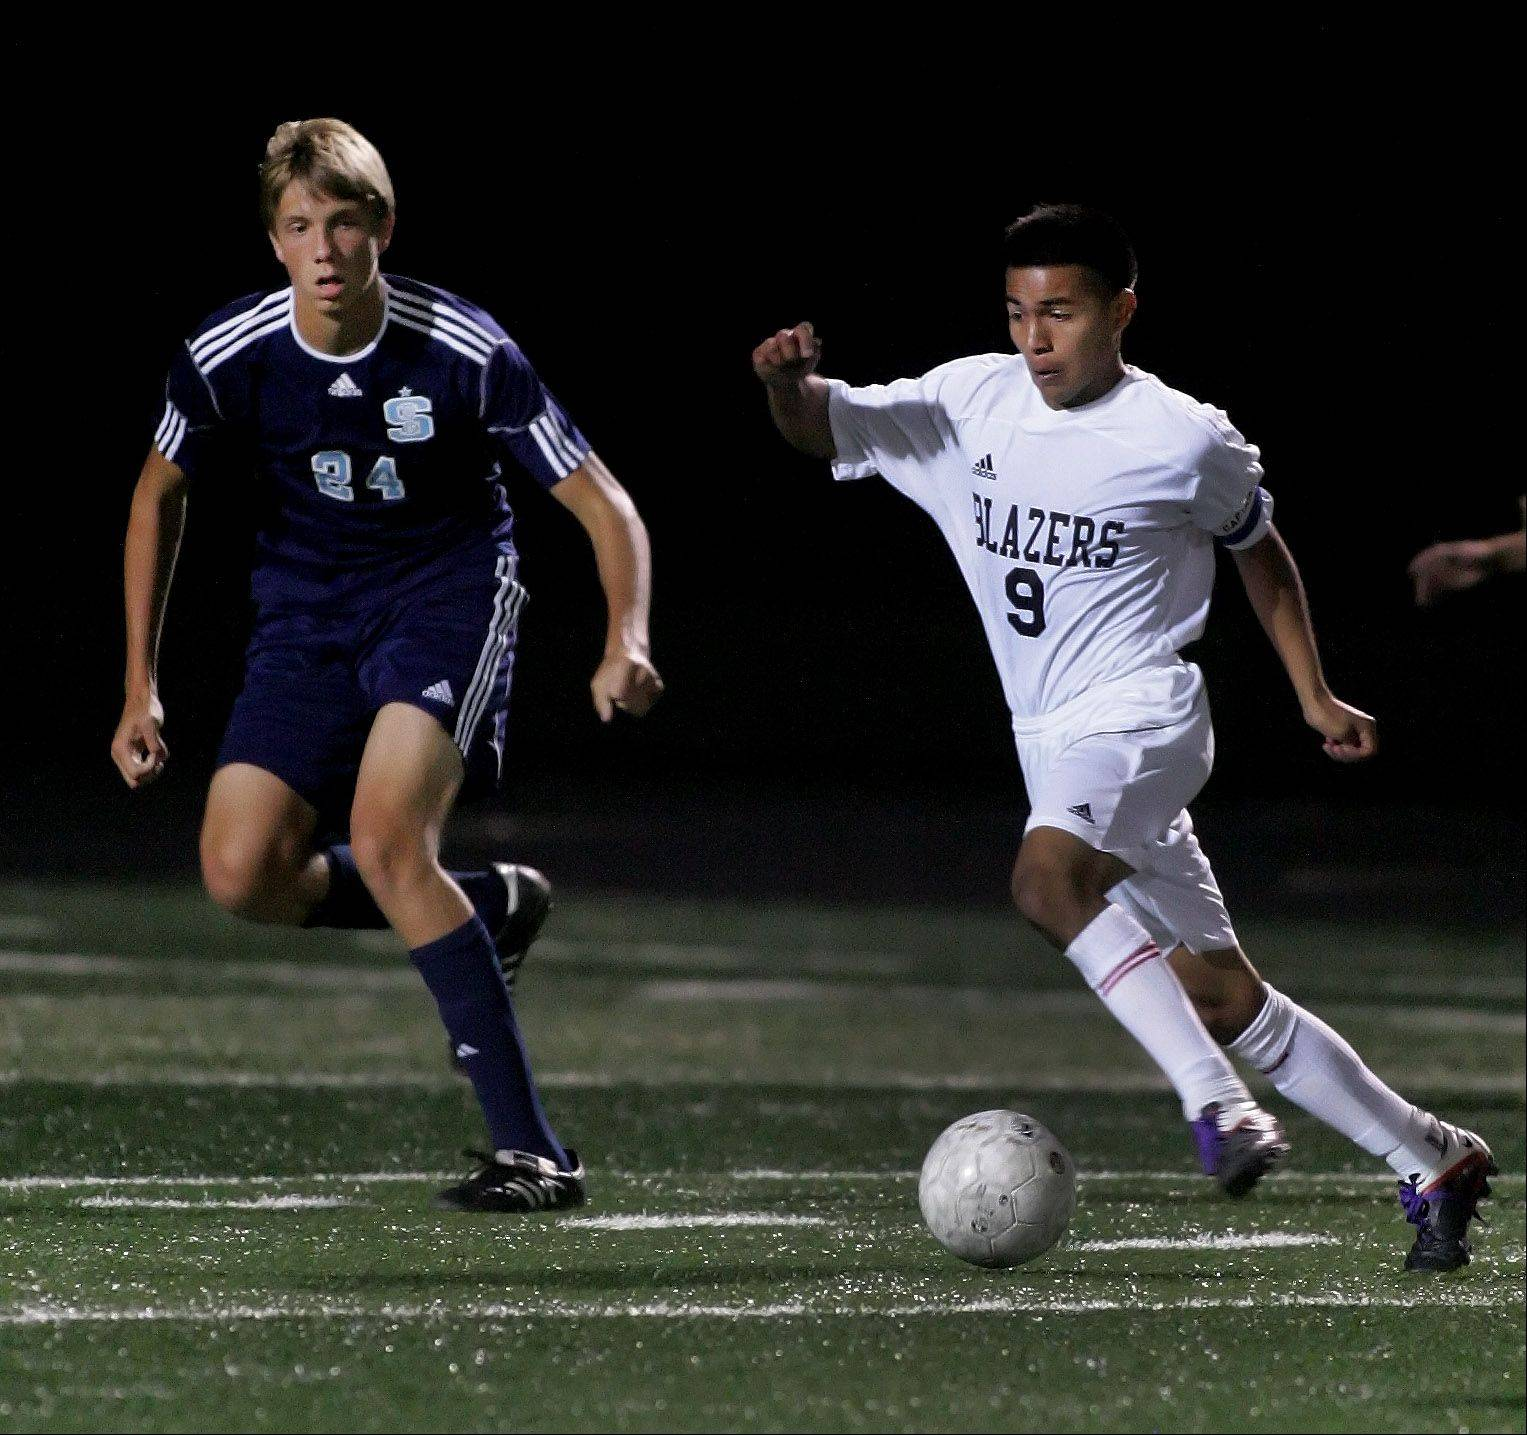 Javier Rodriguez of Addison Trail takes control of the ball from David Drews, left, of Downers Grove South in boys soccer action on Tuesday in Addison.